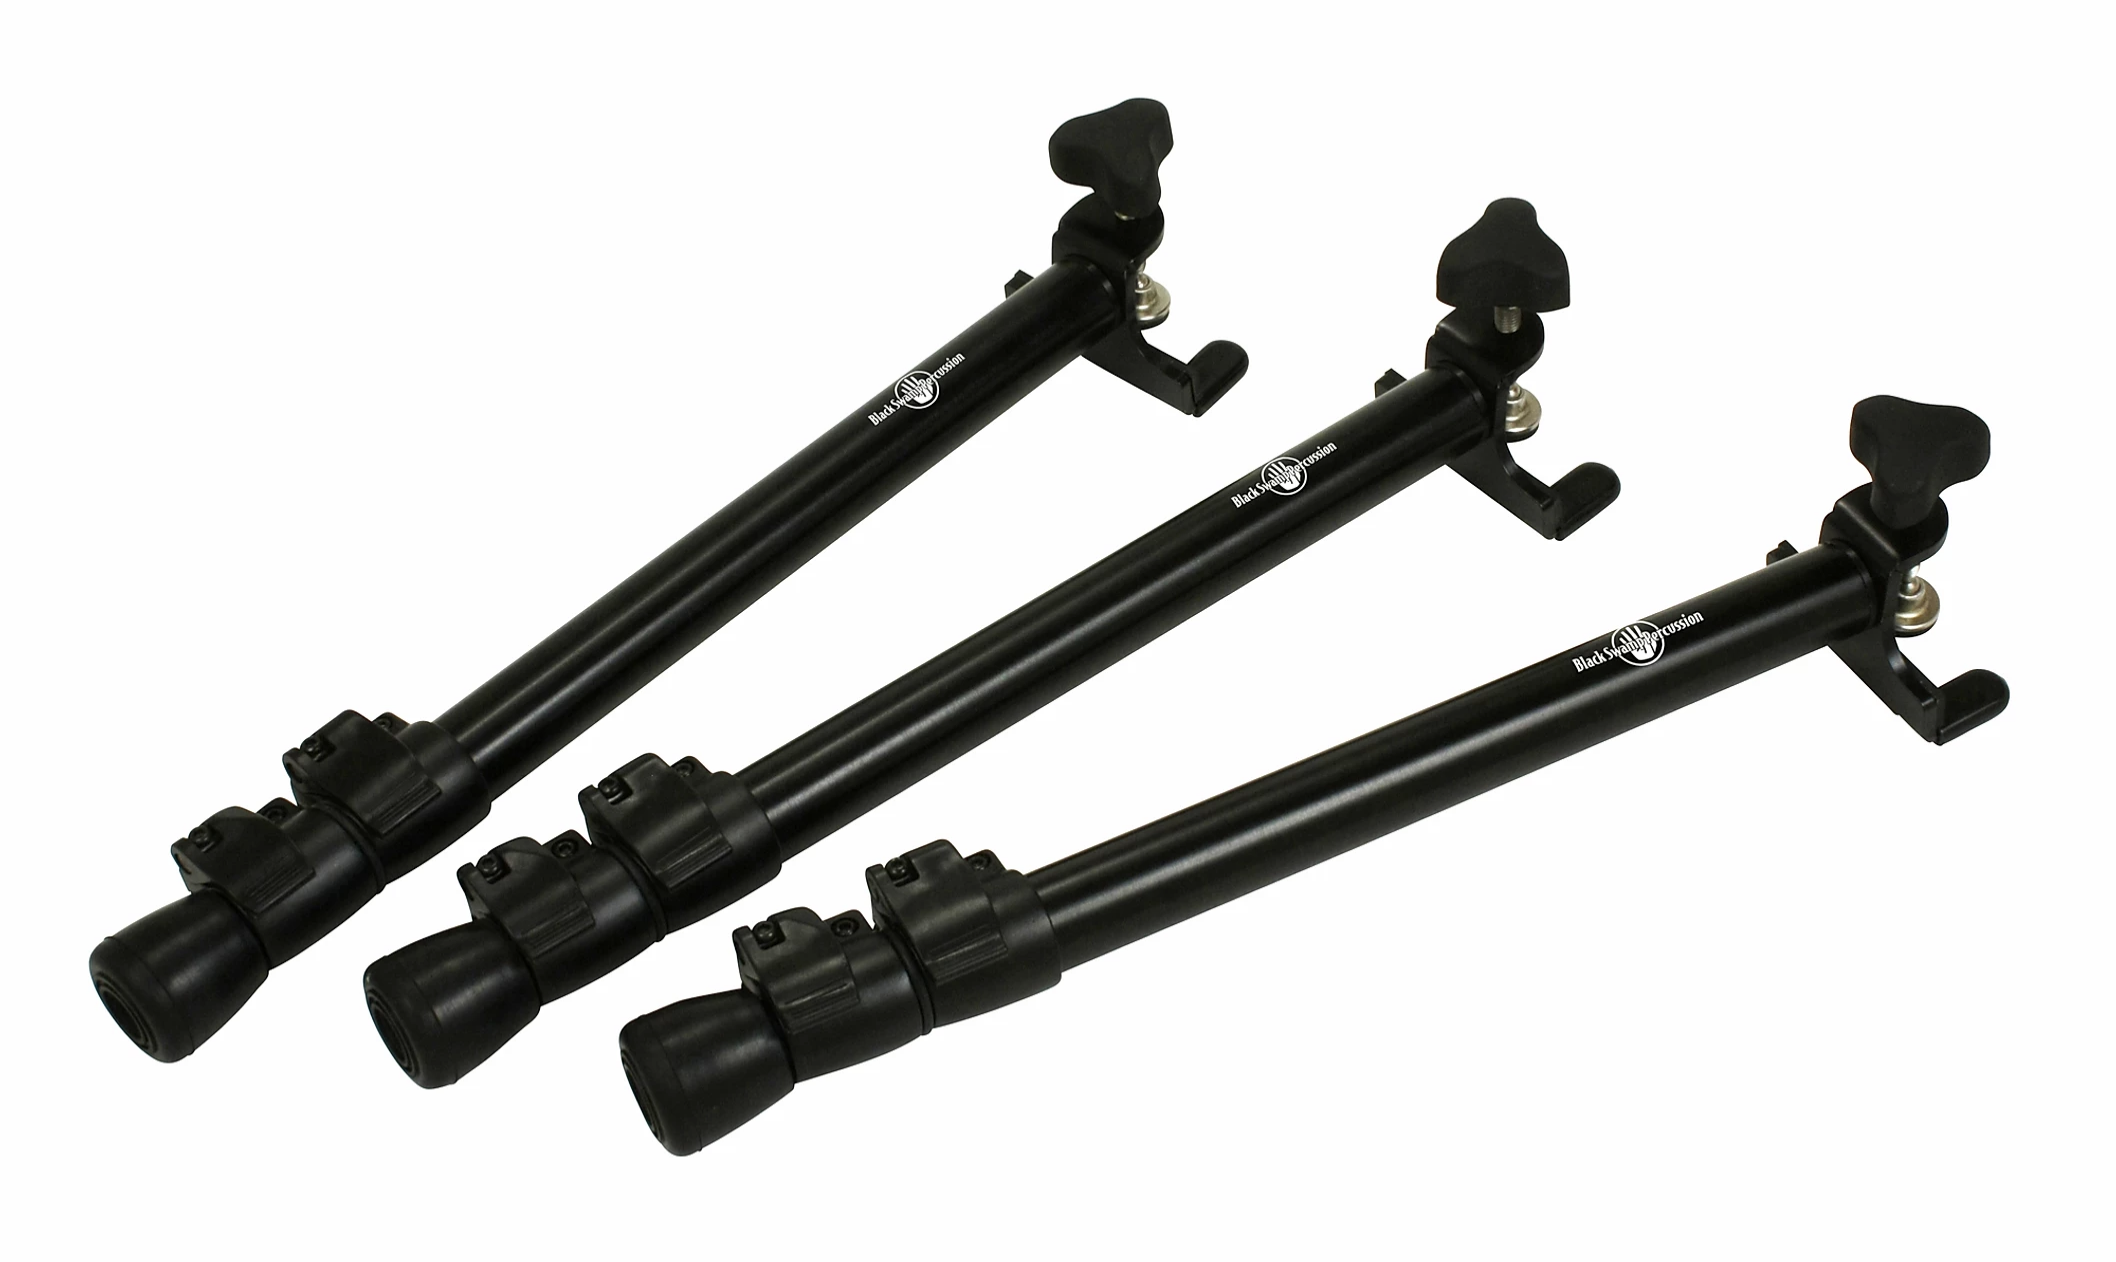 Black Swamp Percussion MLEG3 Multilegs for Bassdrum